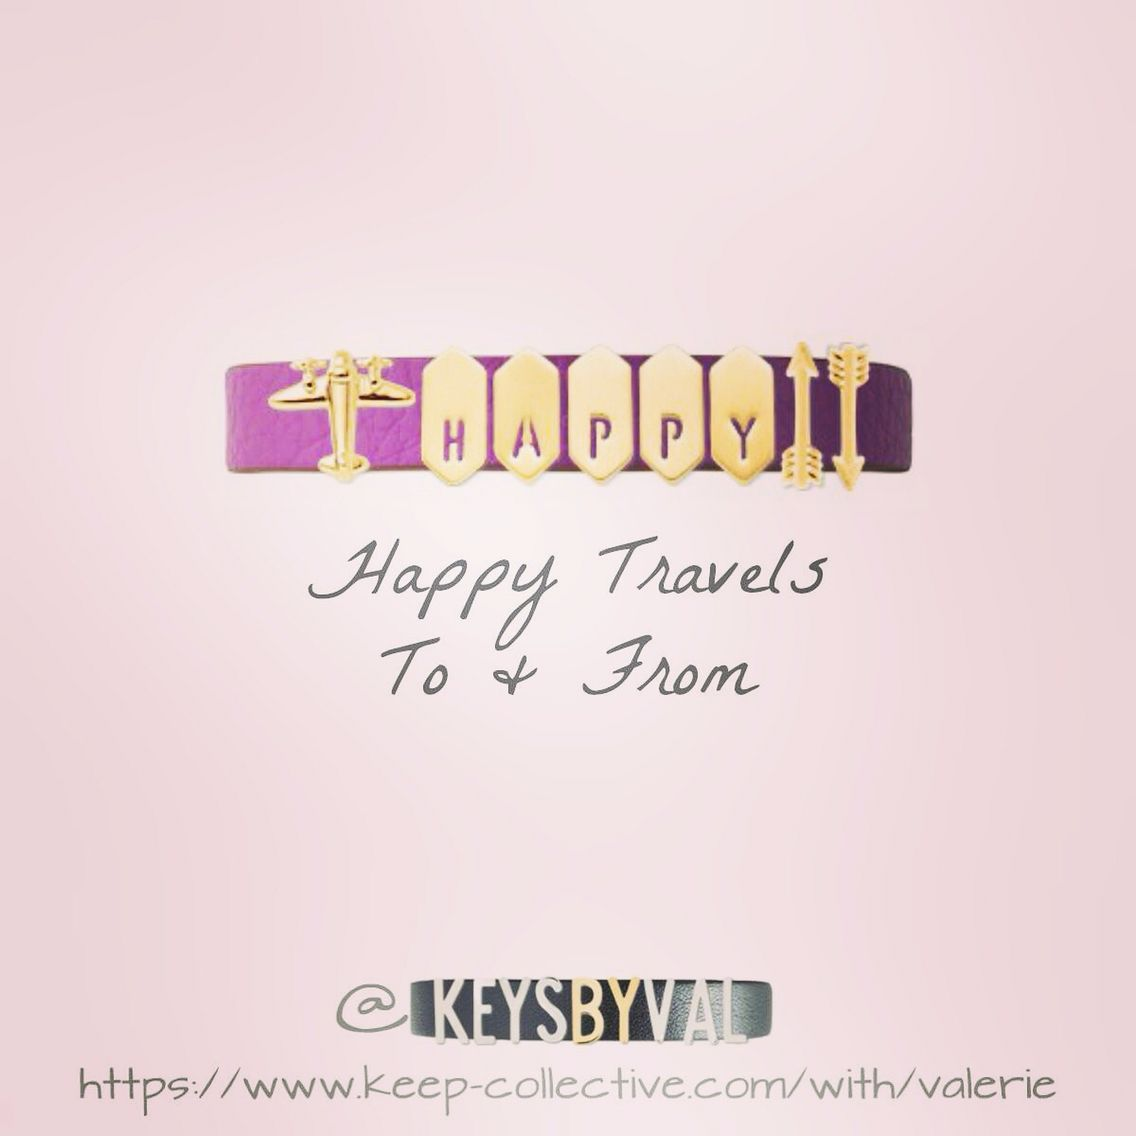 On the road today - here's some travel inspiration! :)